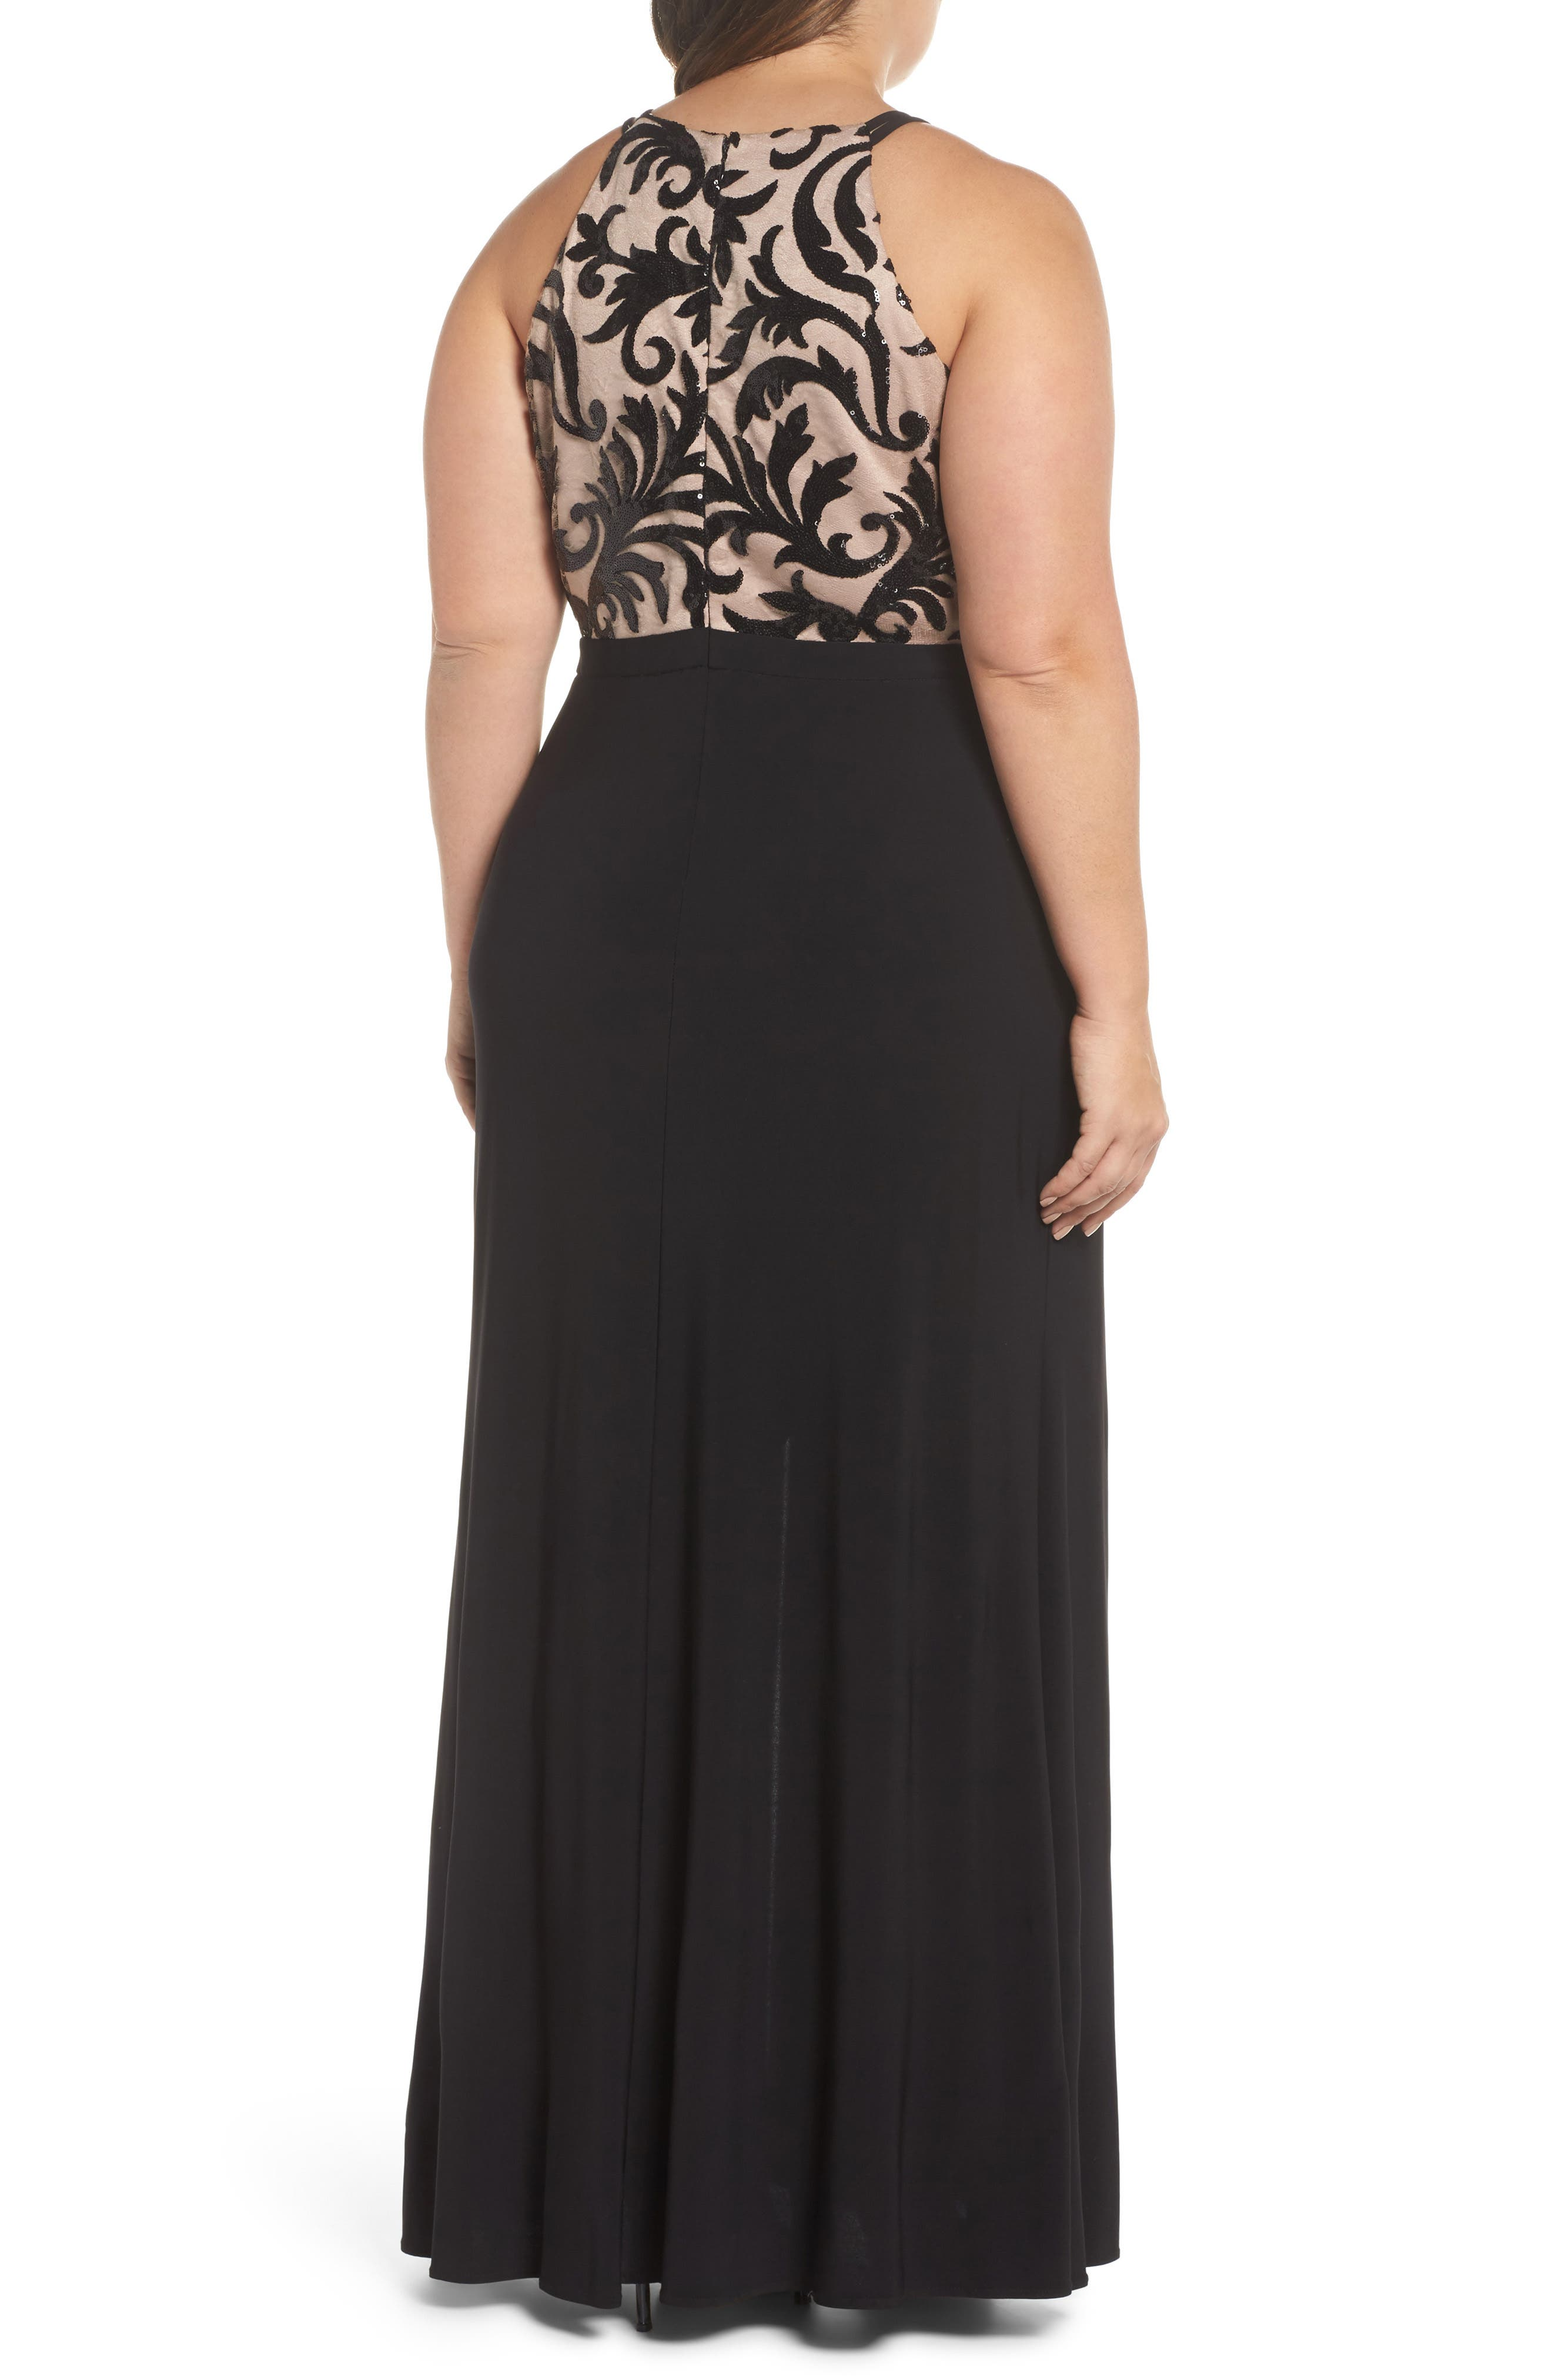 Sequin Bodice Gown,                             Alternate thumbnail 2, color,                             Black/ Nude